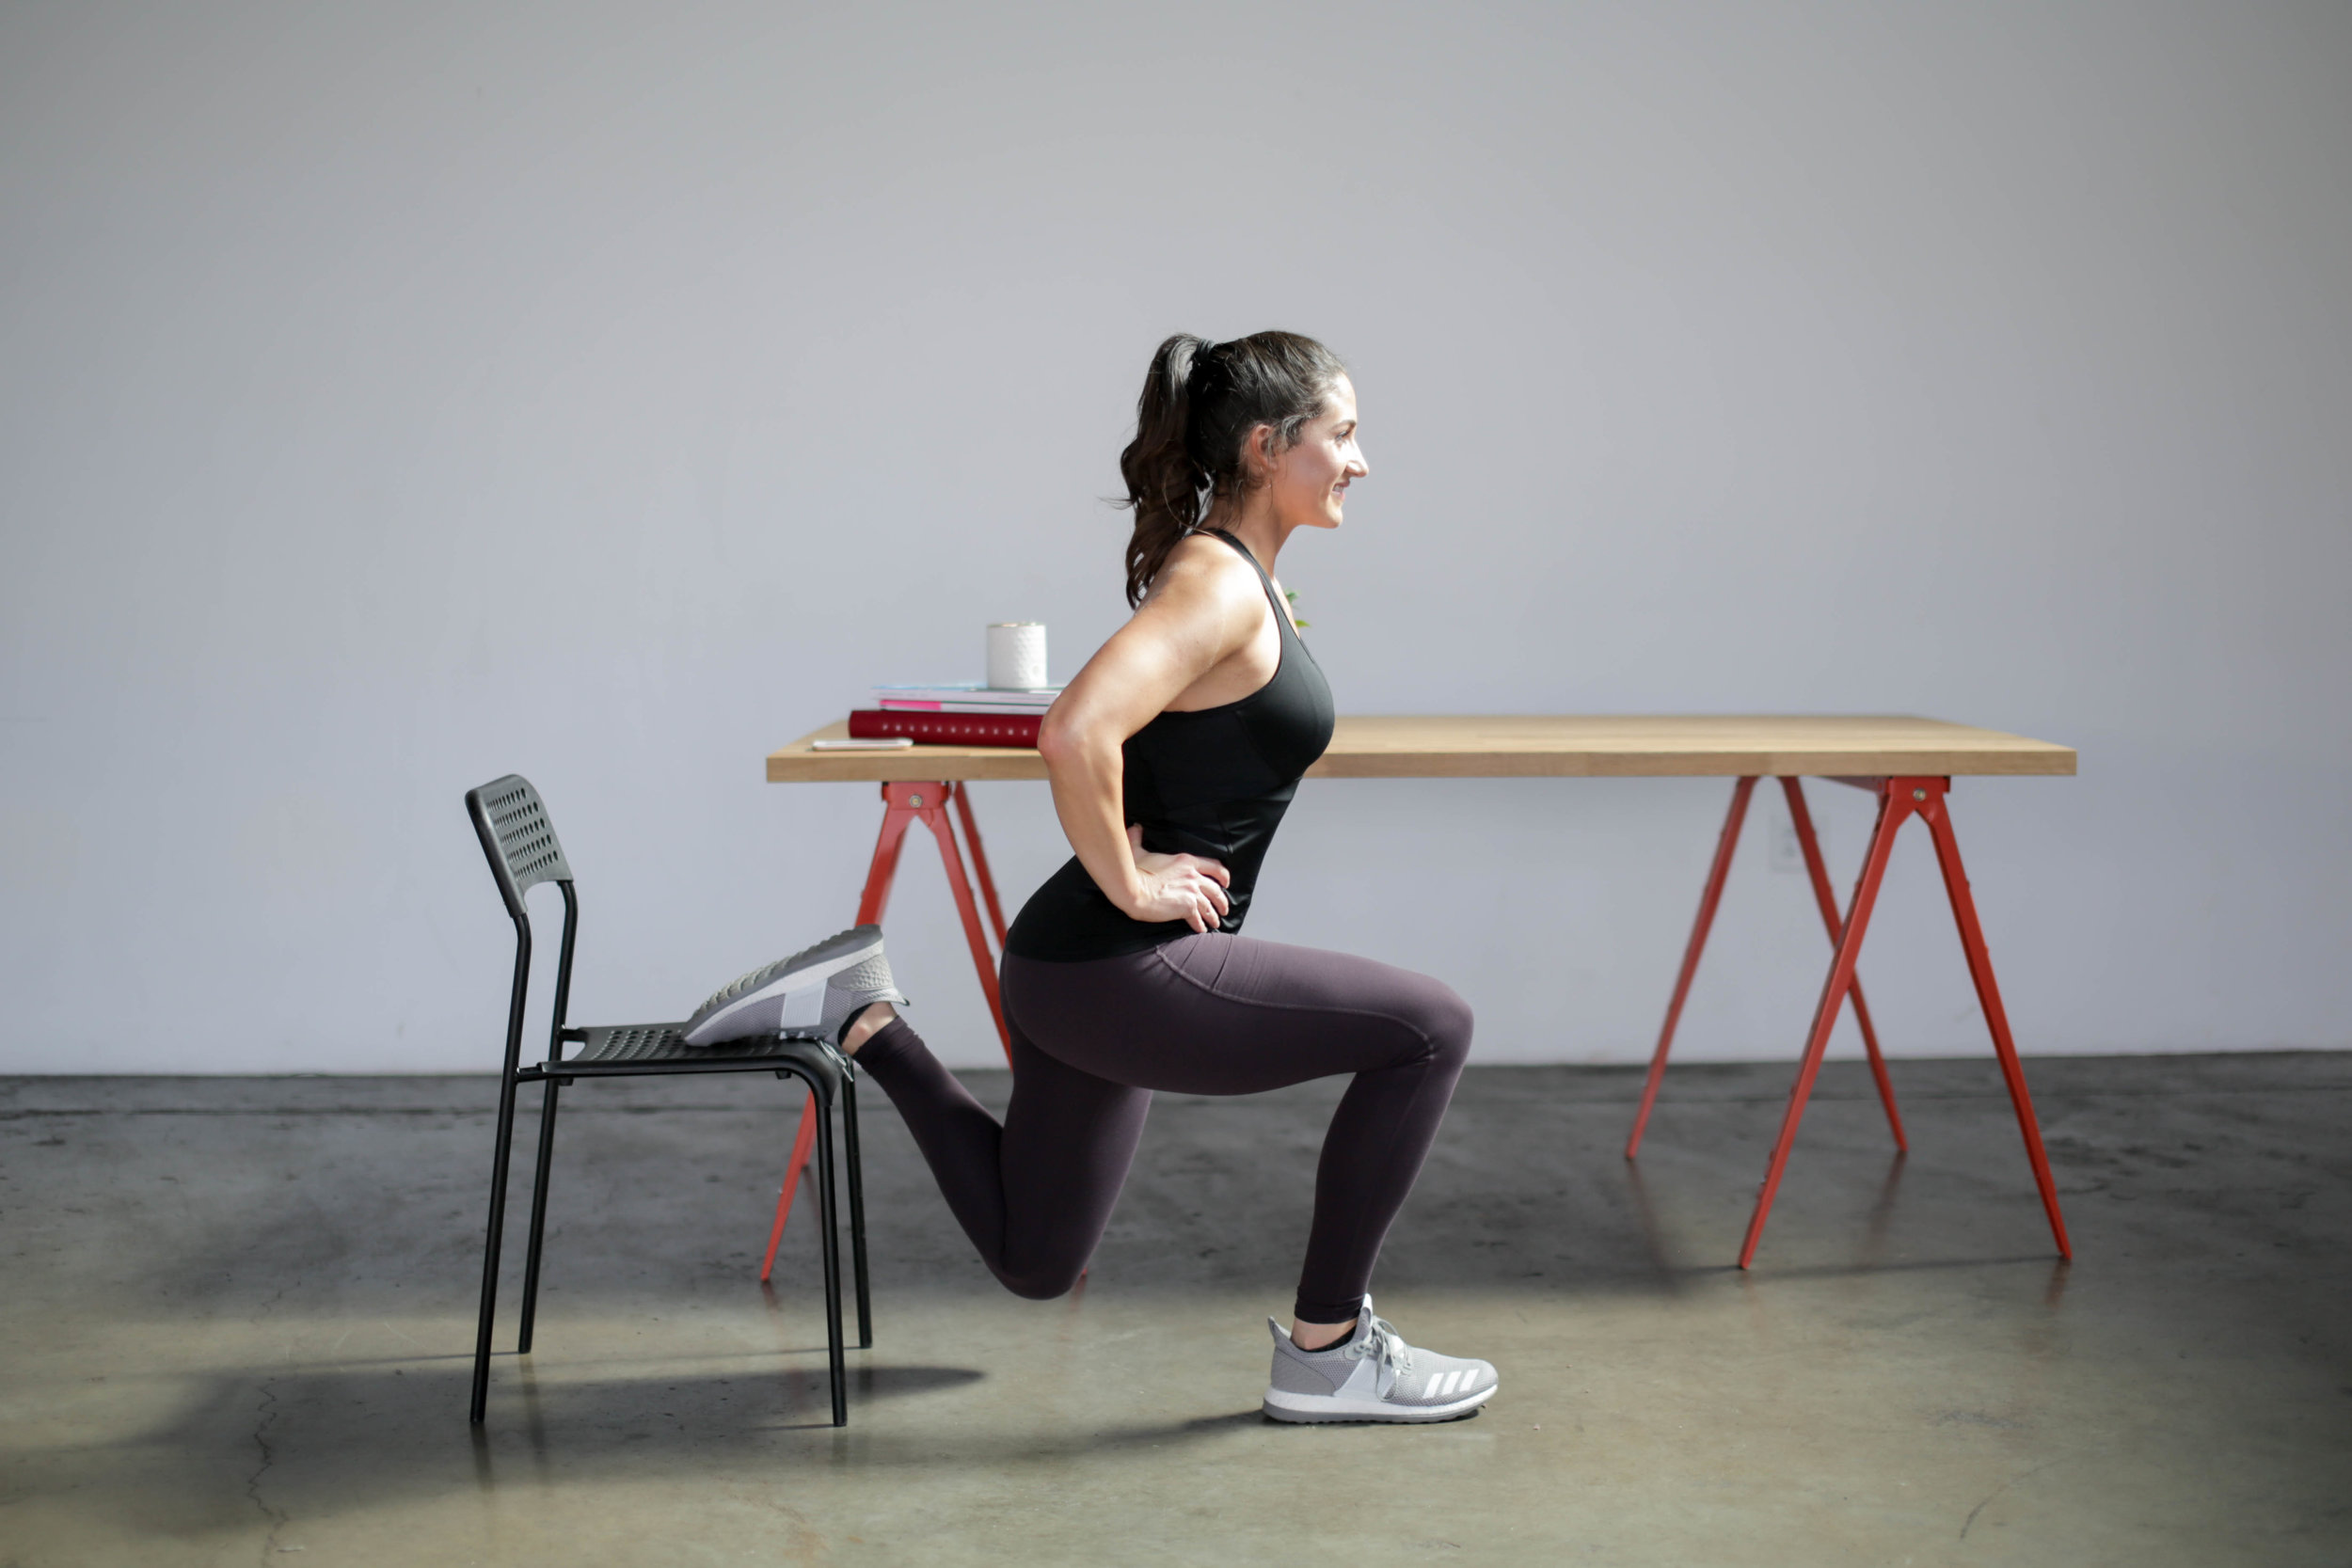 10 Moves to Tone and Strengthen Your Glutes by Jennifer Diaz // How to tone your glutes // moves for strong glutes // the best lower body exercises // why you should lift lower body // best butt exercises